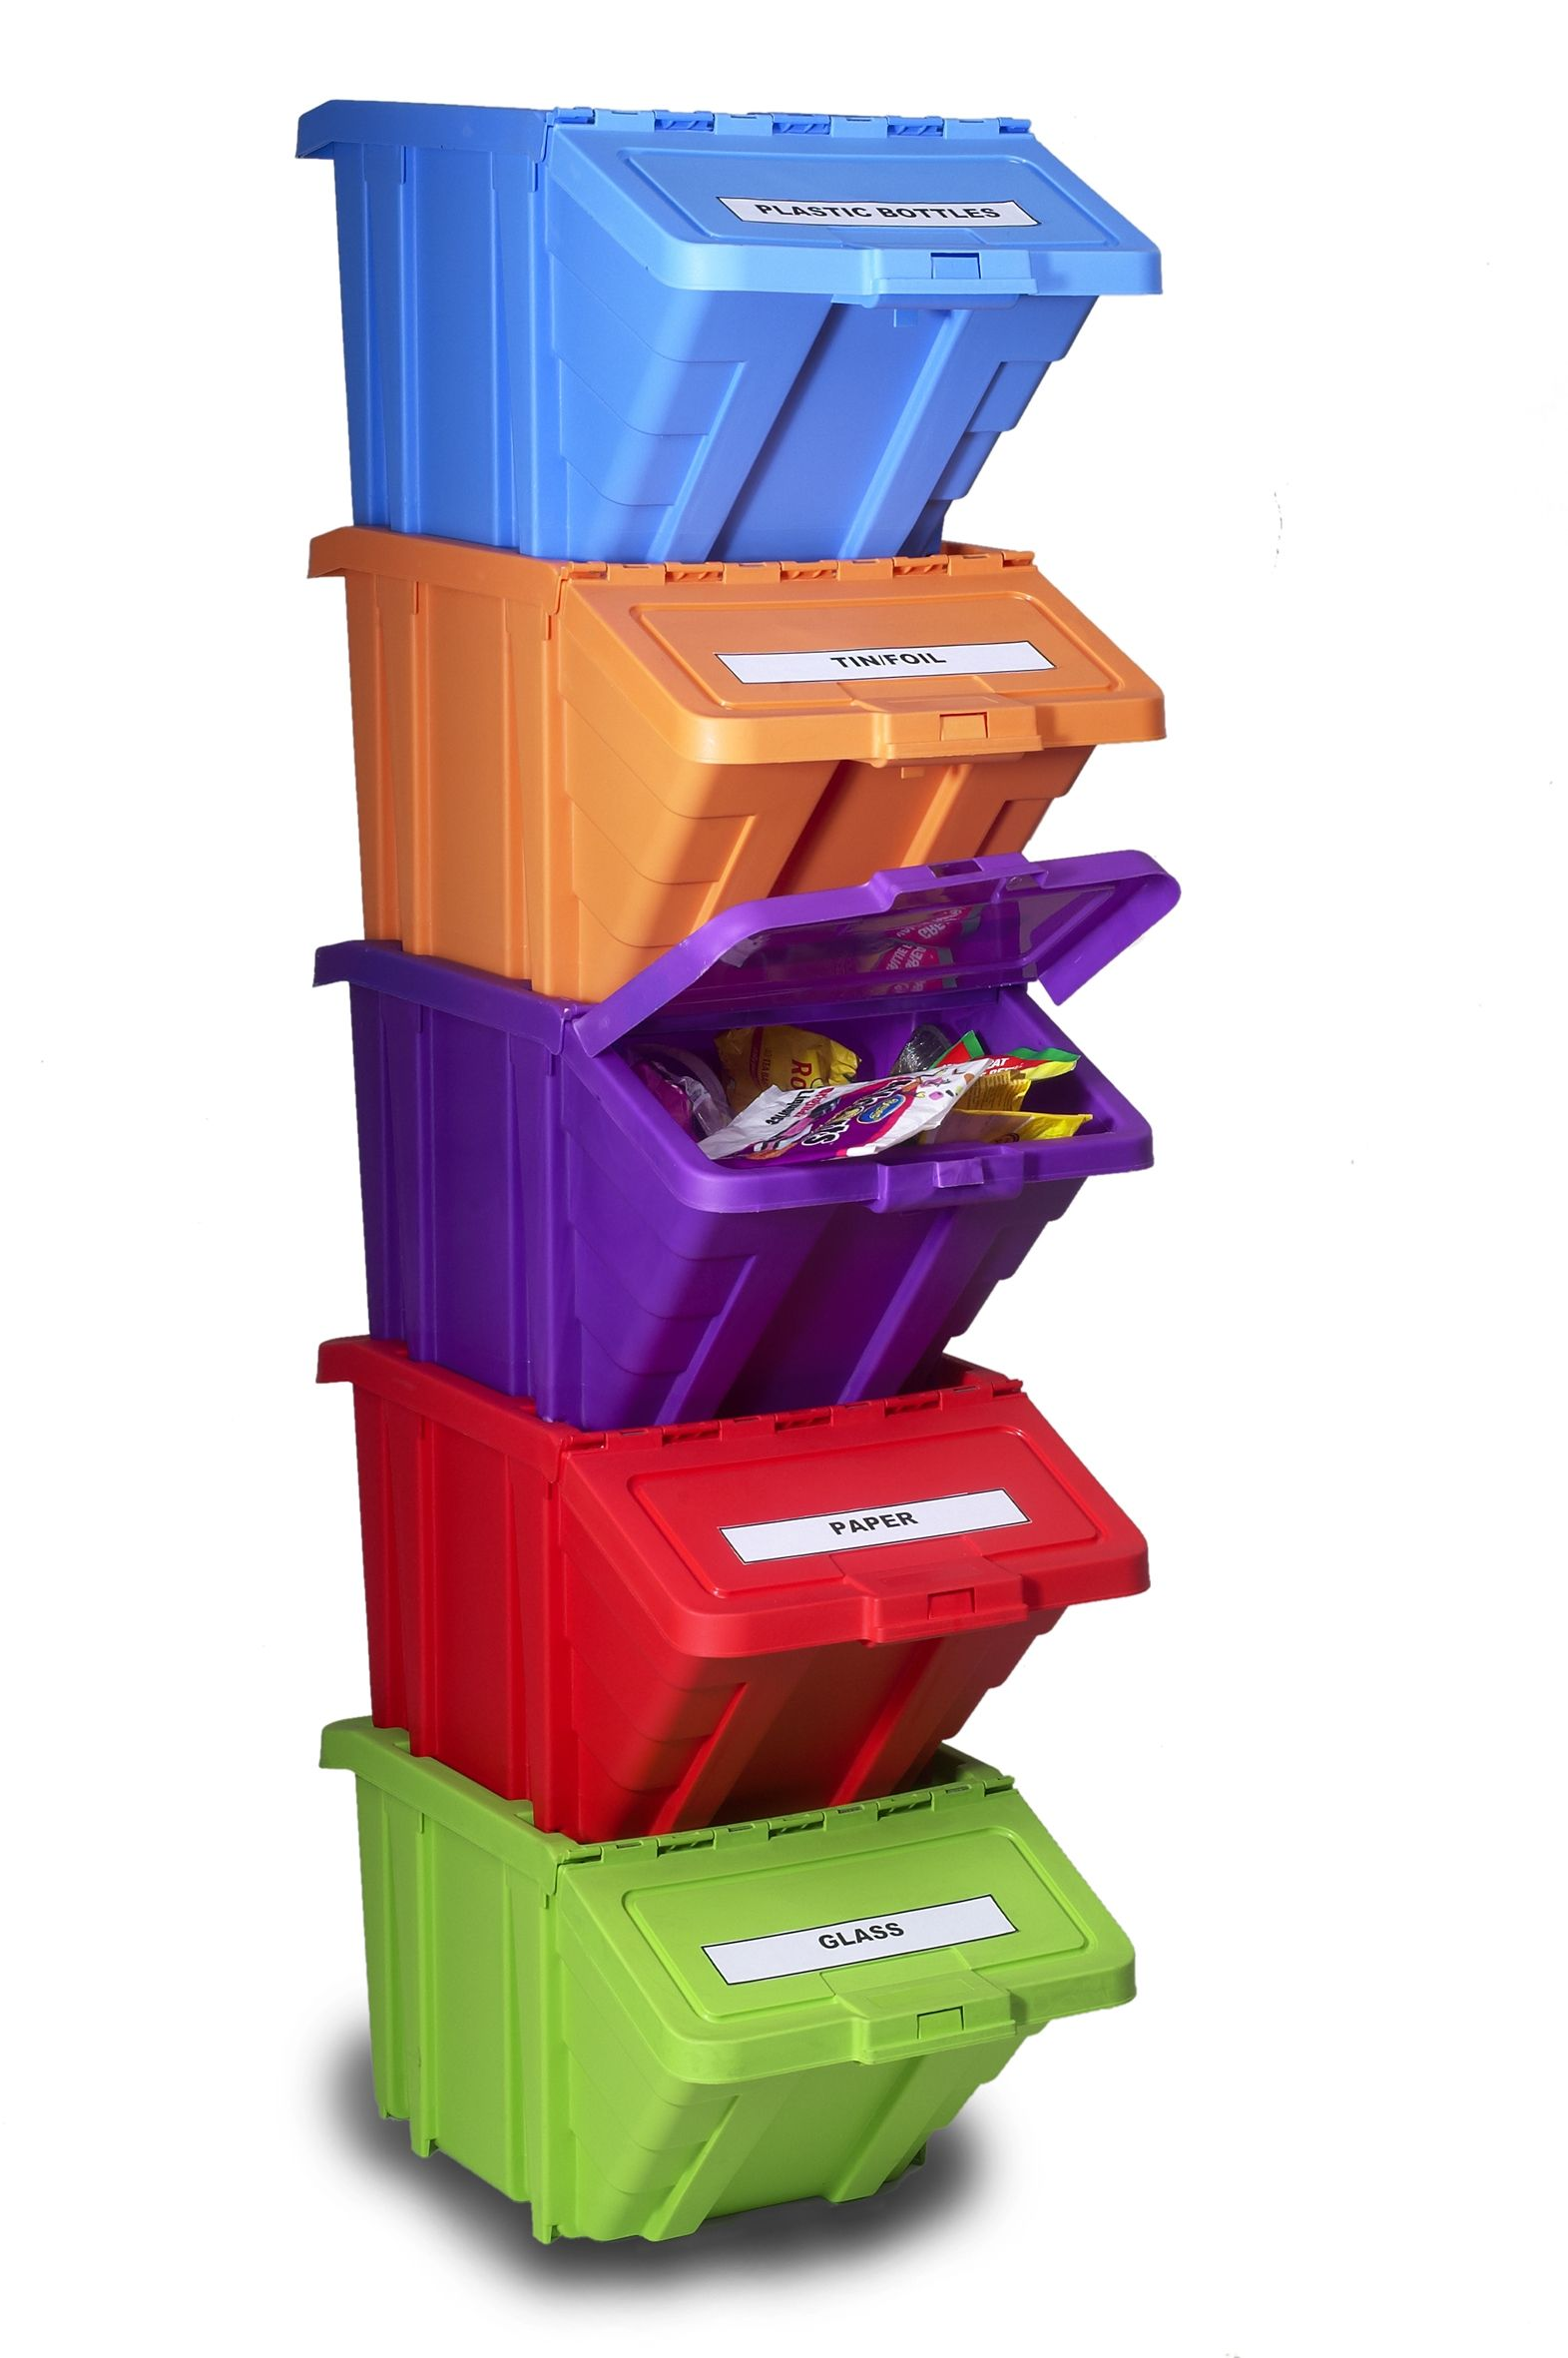 Fun and stackable Recycle bin | Promotag promo items in 2019